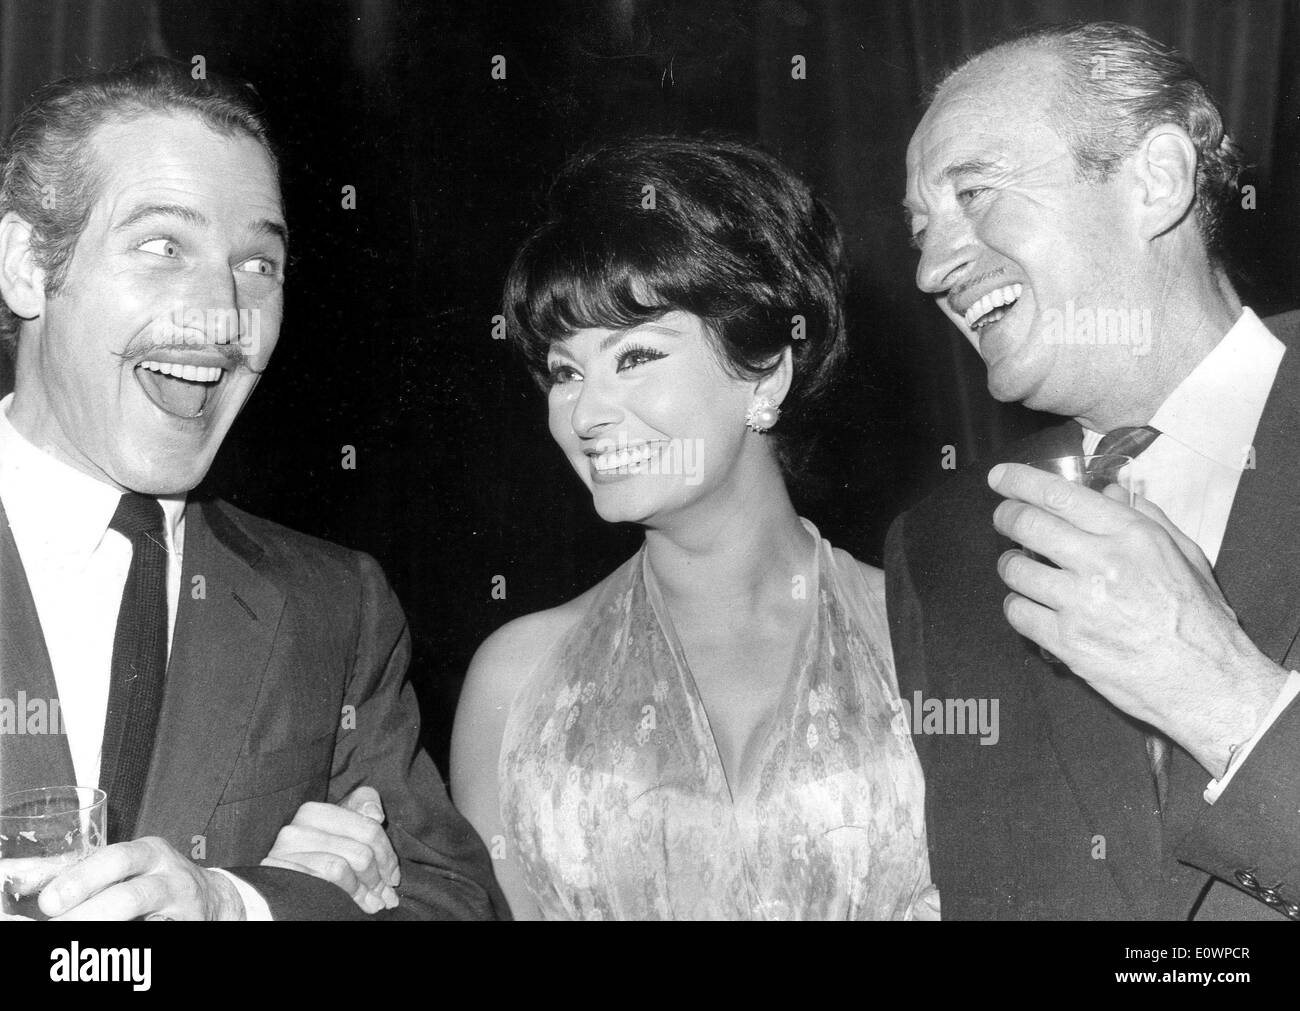 Actor Paul Newman with Sophia Loren and David Niven at opening night of 'Lady L' - Stock Image